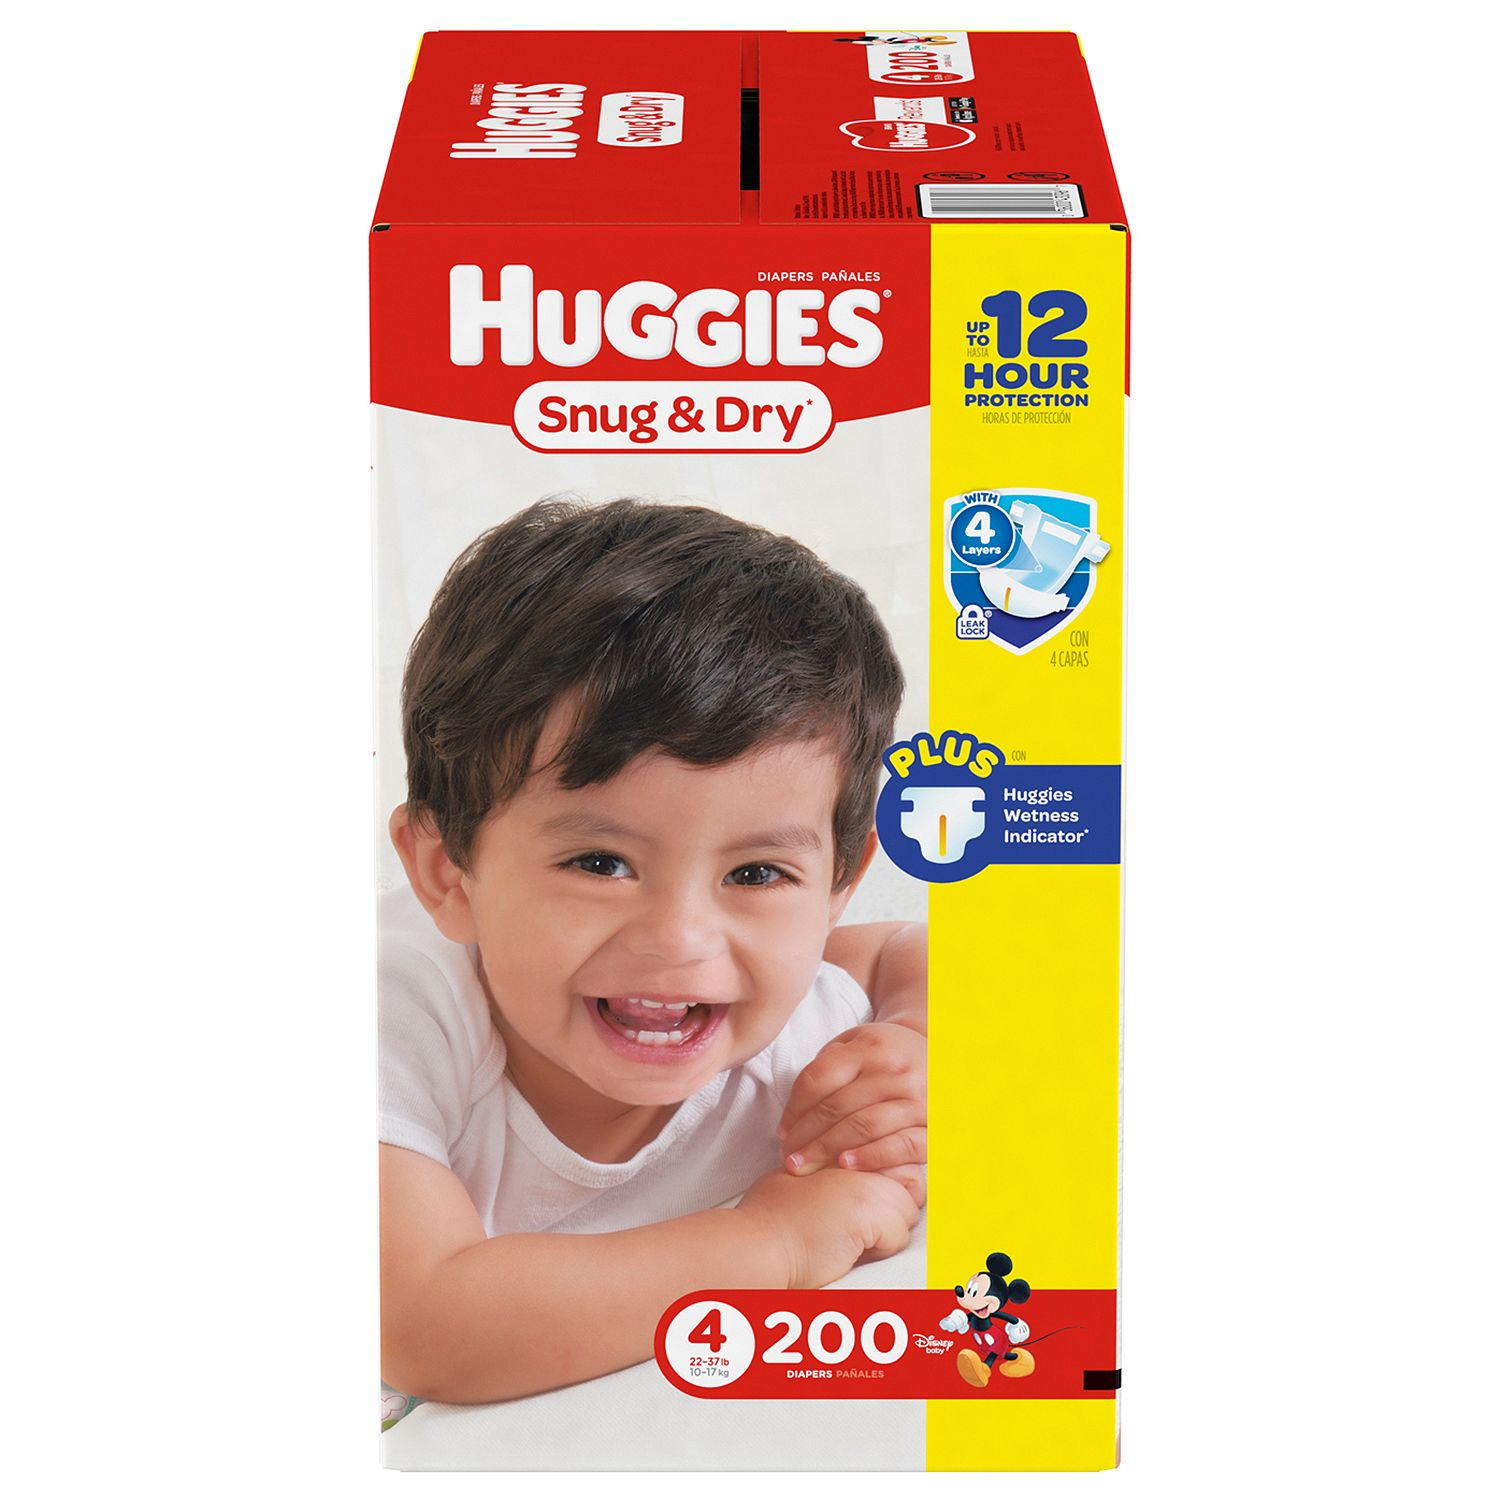 Huggies Snug & Dry Diapers - Diaper Size 4 - 200 Ct. ( Weight 22- 37 Lbs.) (Comfortable baby diaper)(Celebrating win of Houston Astros - Enjoy discounts)